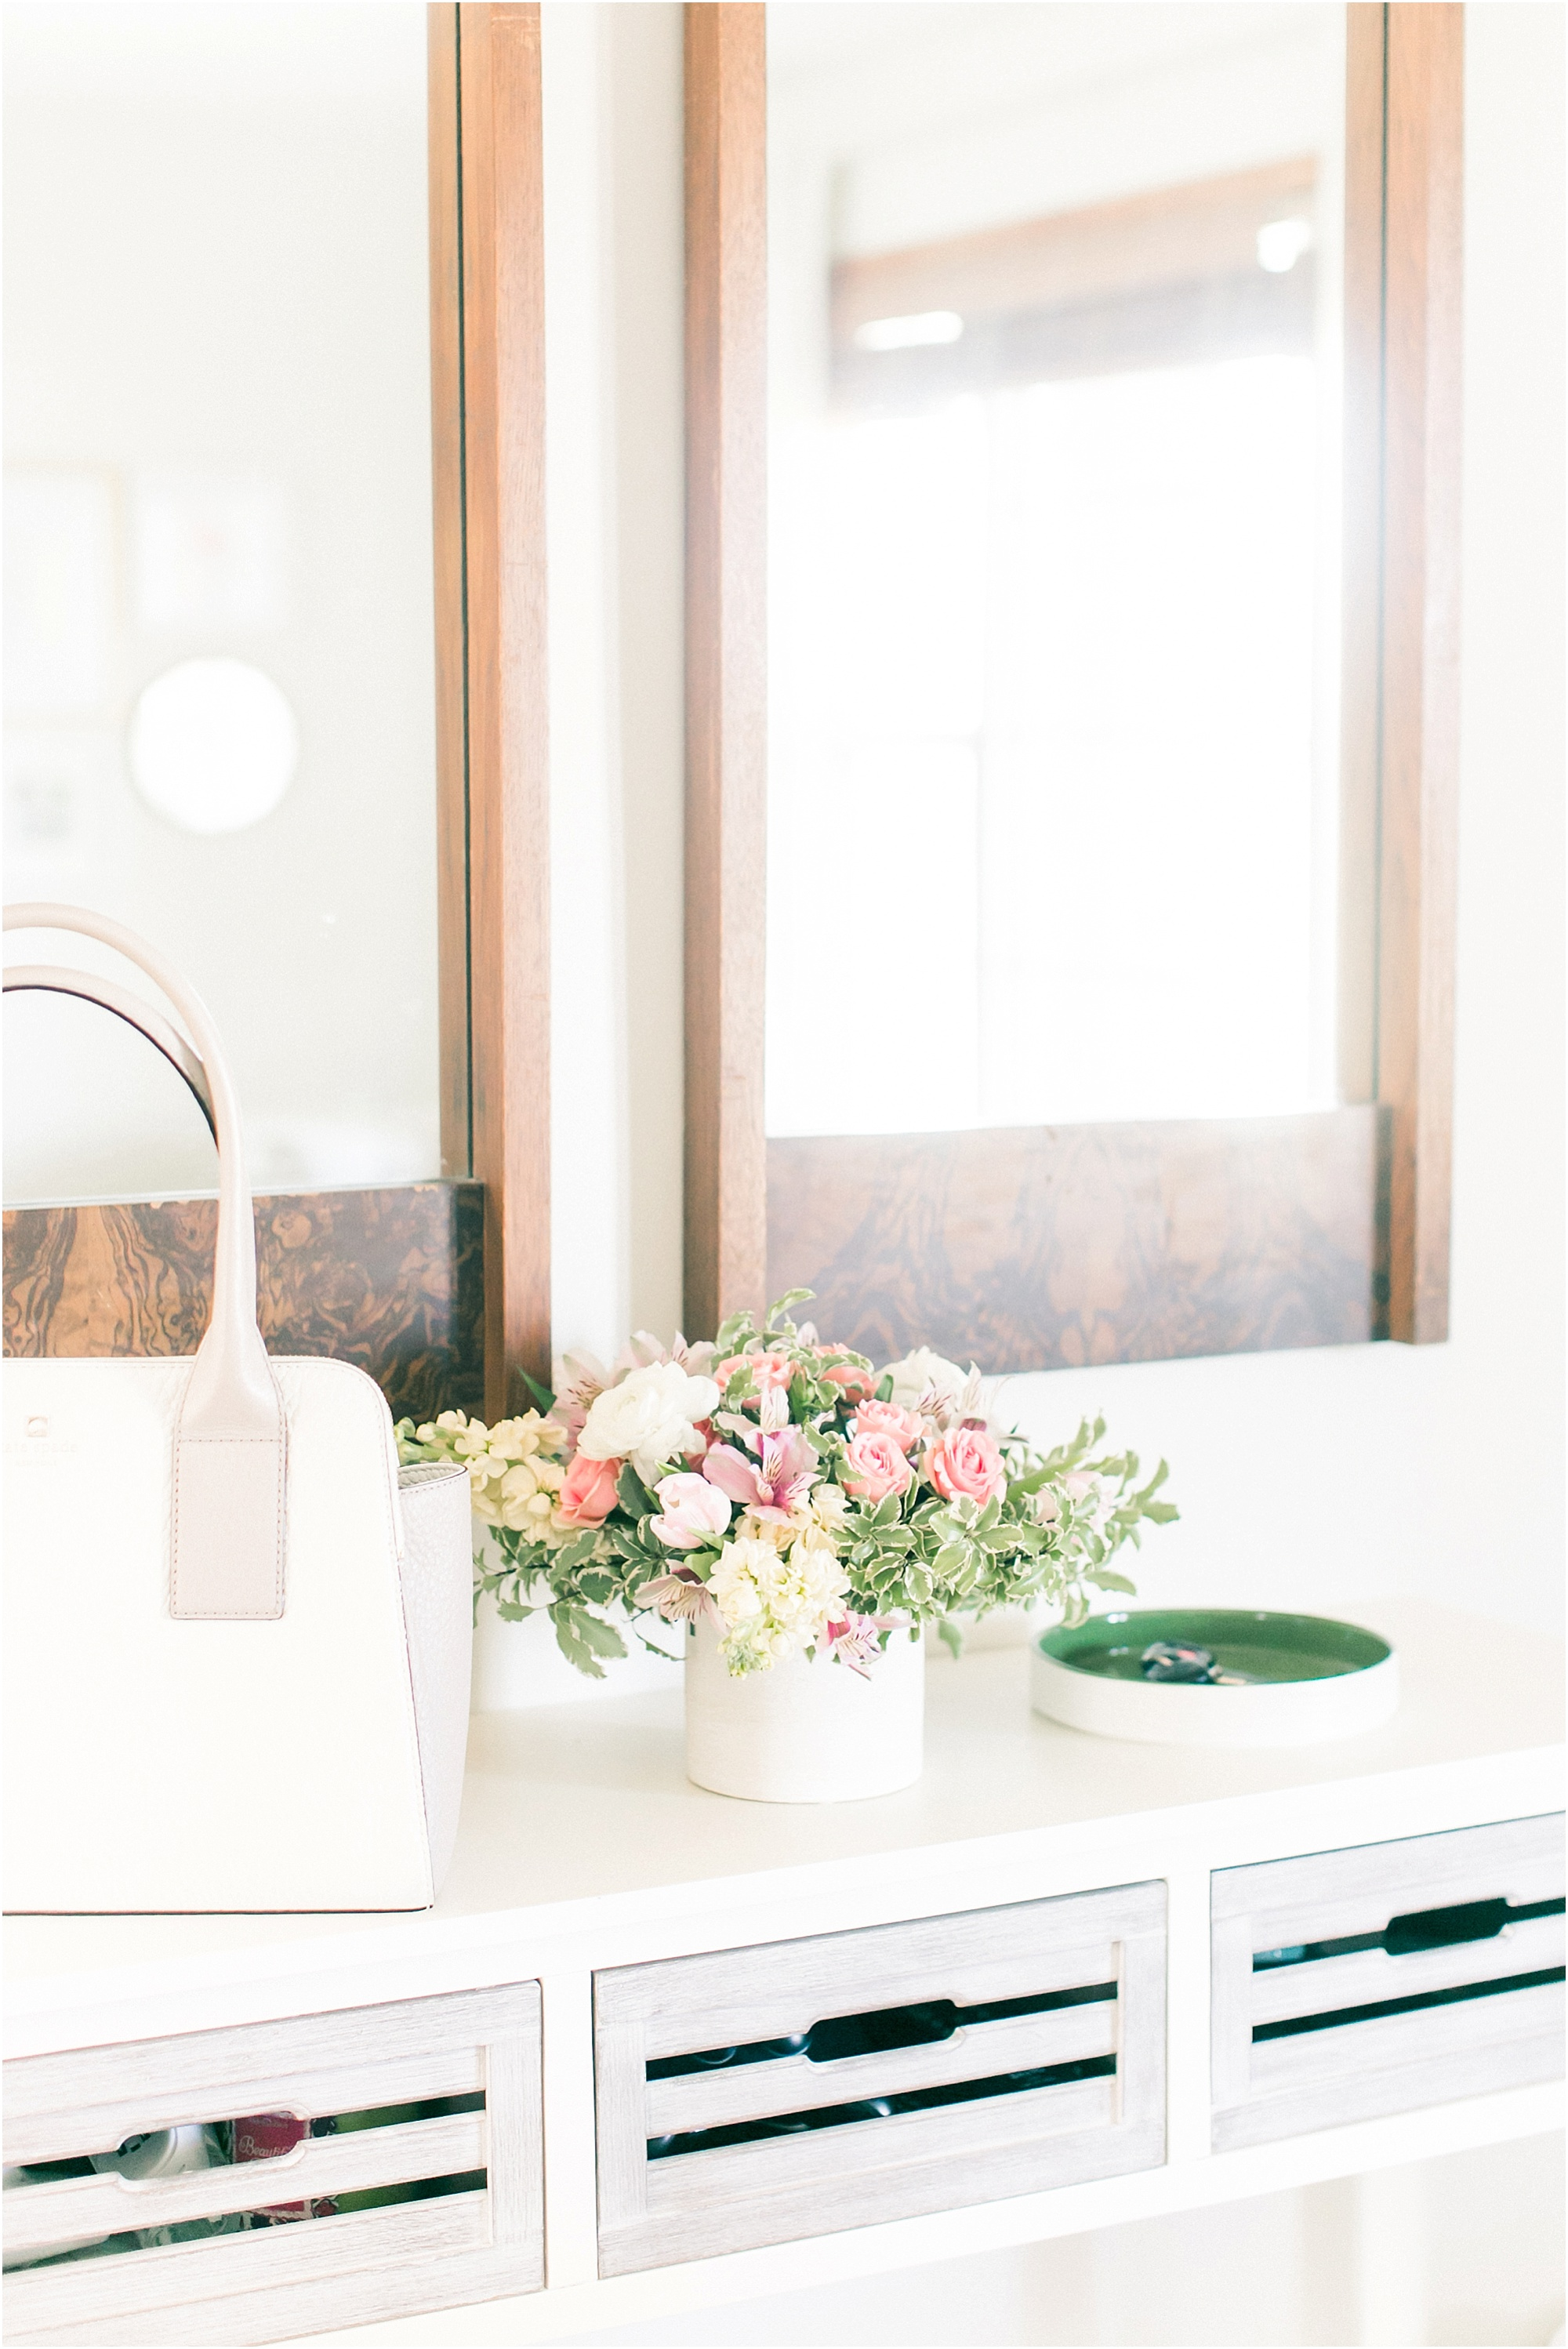 3 Inspiring places for a floral arrangment in your home - The Jordan Brittley Blog